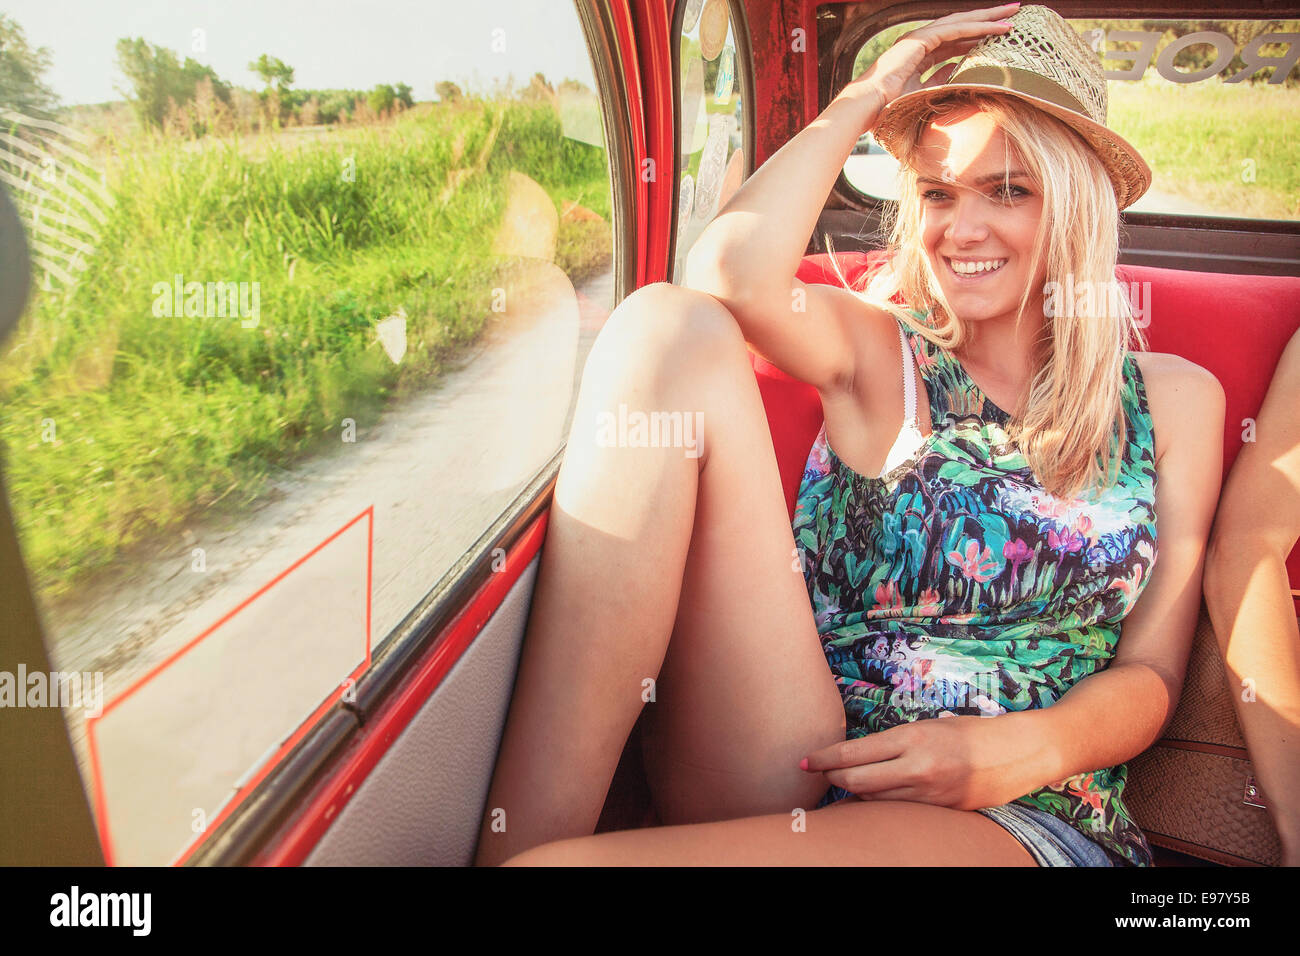 Woman on back seat of vintage car smiling happily - Stock Image